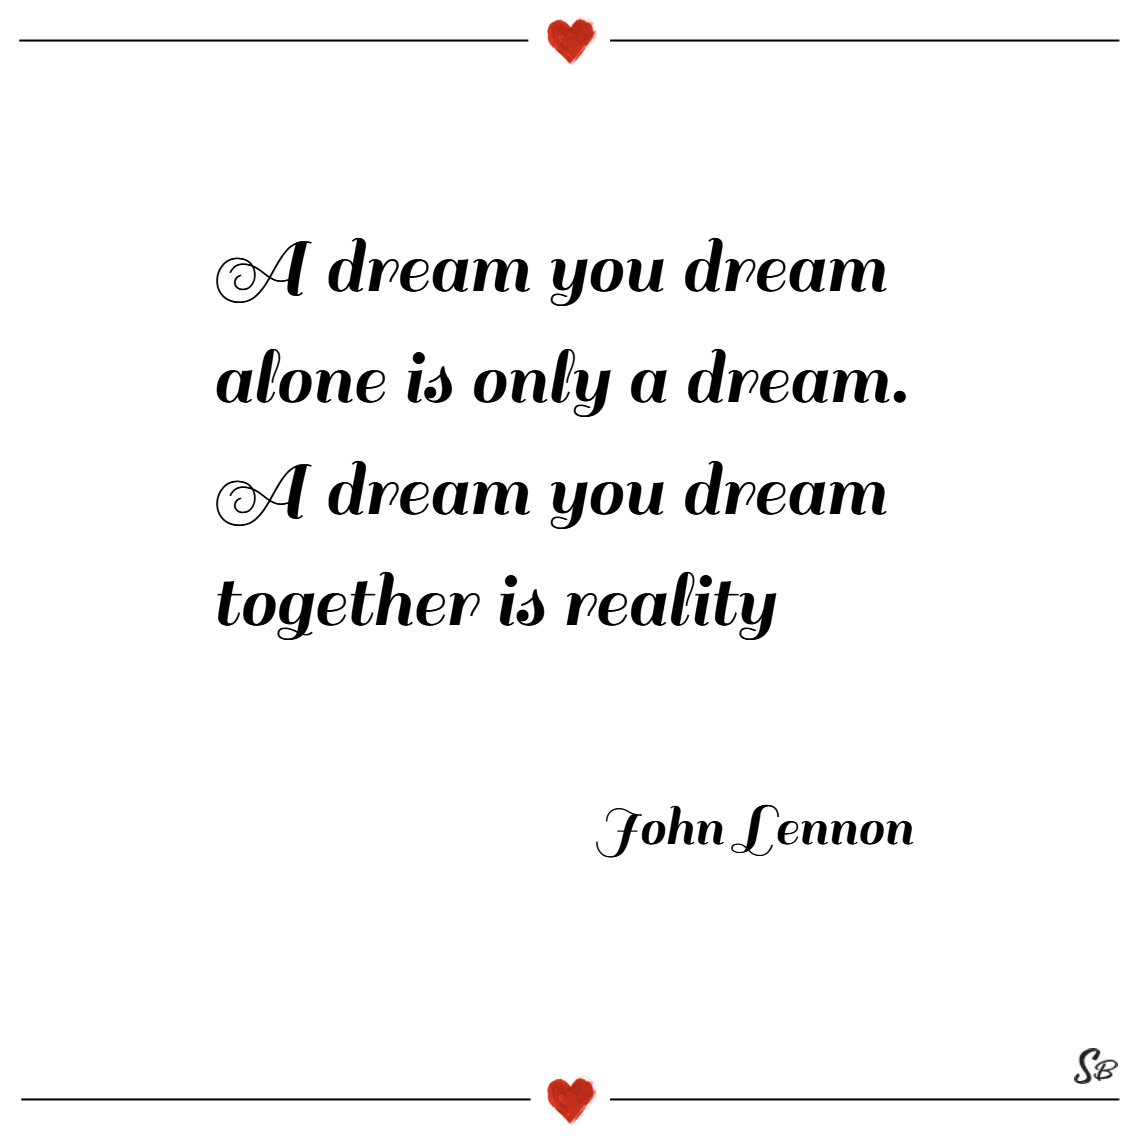 A dream you dream alone is only a dream. a dream y